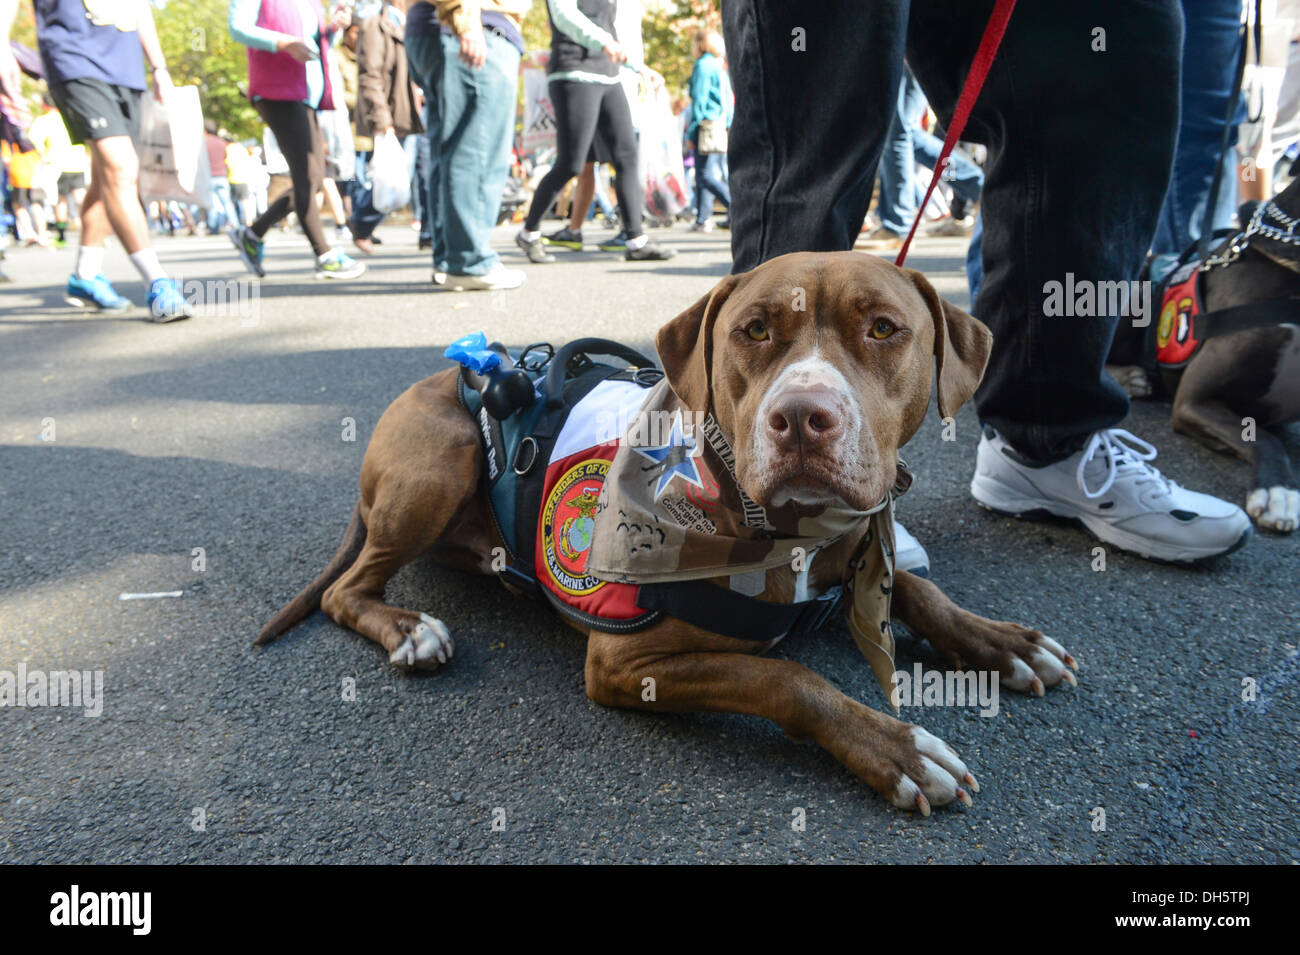 Rome, a pitbull with the Northwest Battle Buddies service dogs rests in the shade at the 38th Annual Marine Corps Marathon's Finish Festival in Arlington, Va., Oct. 27, 2013. Known as 'The People's Marathon,' the 26.2 mile race, rated the 3rd largest mara - Stock Image